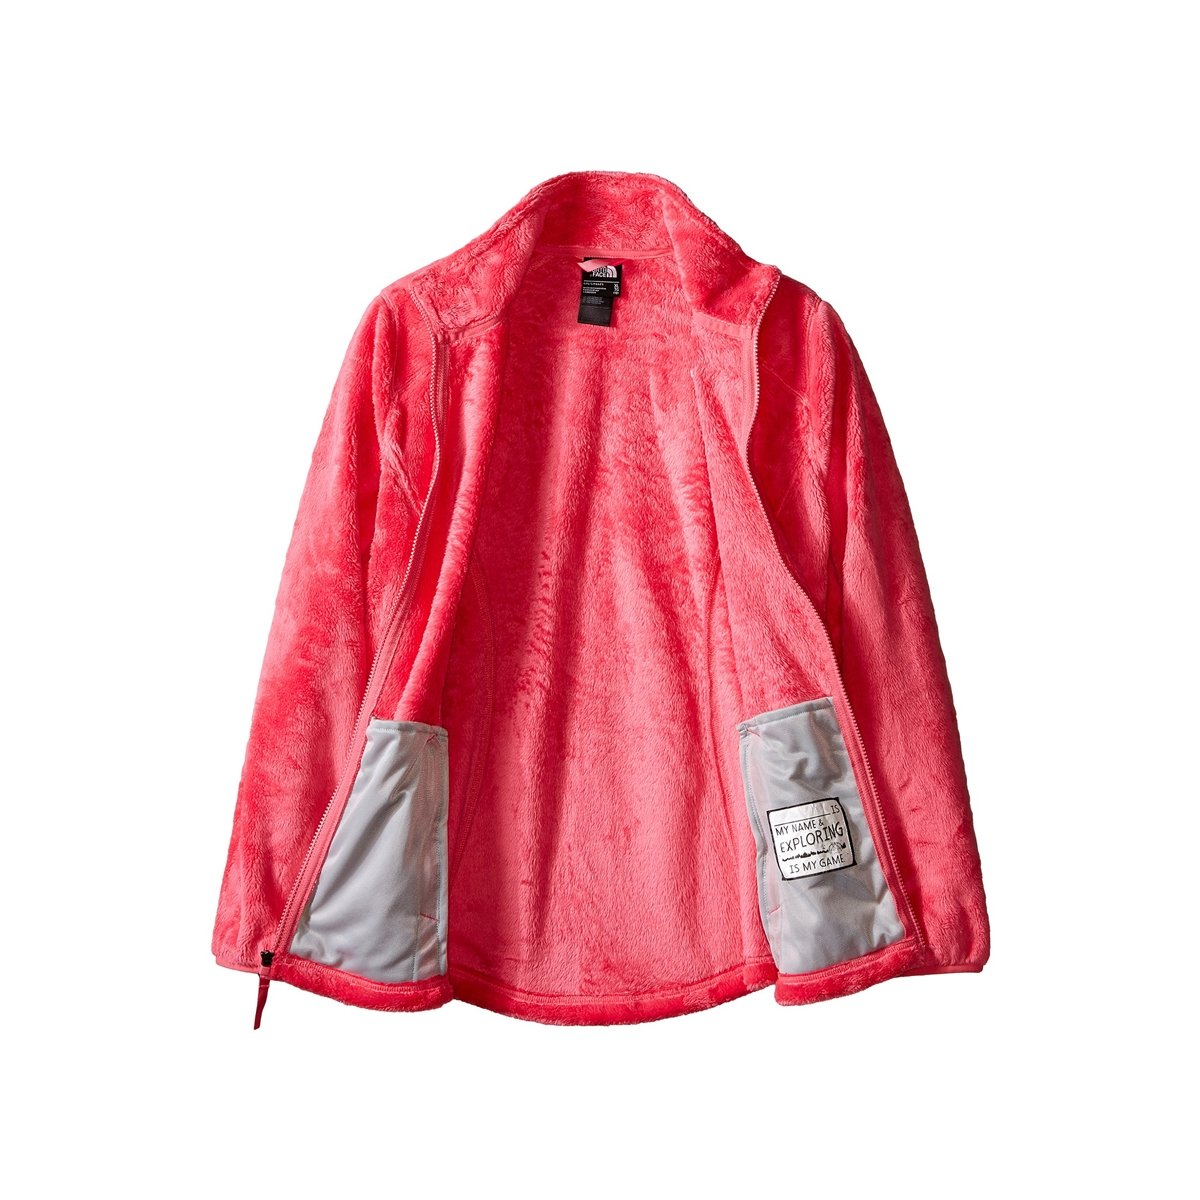 North Face Girls Osolita Jacket, Cha Cha Pink,L M US